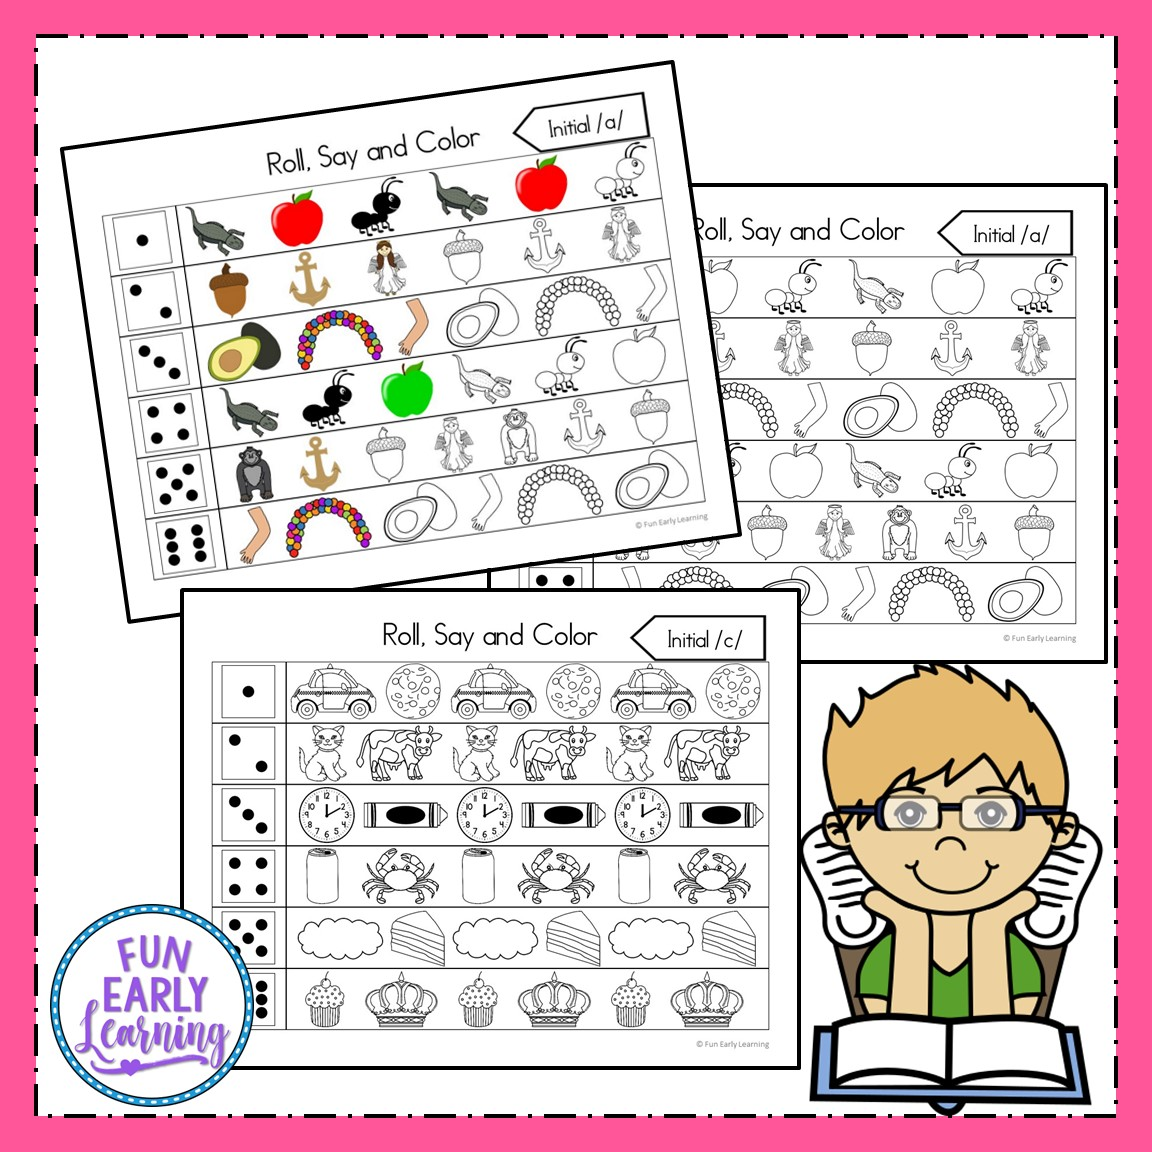 Roll Say And Color Initial Sounds Activity For Phonics Amp Beginning Reading